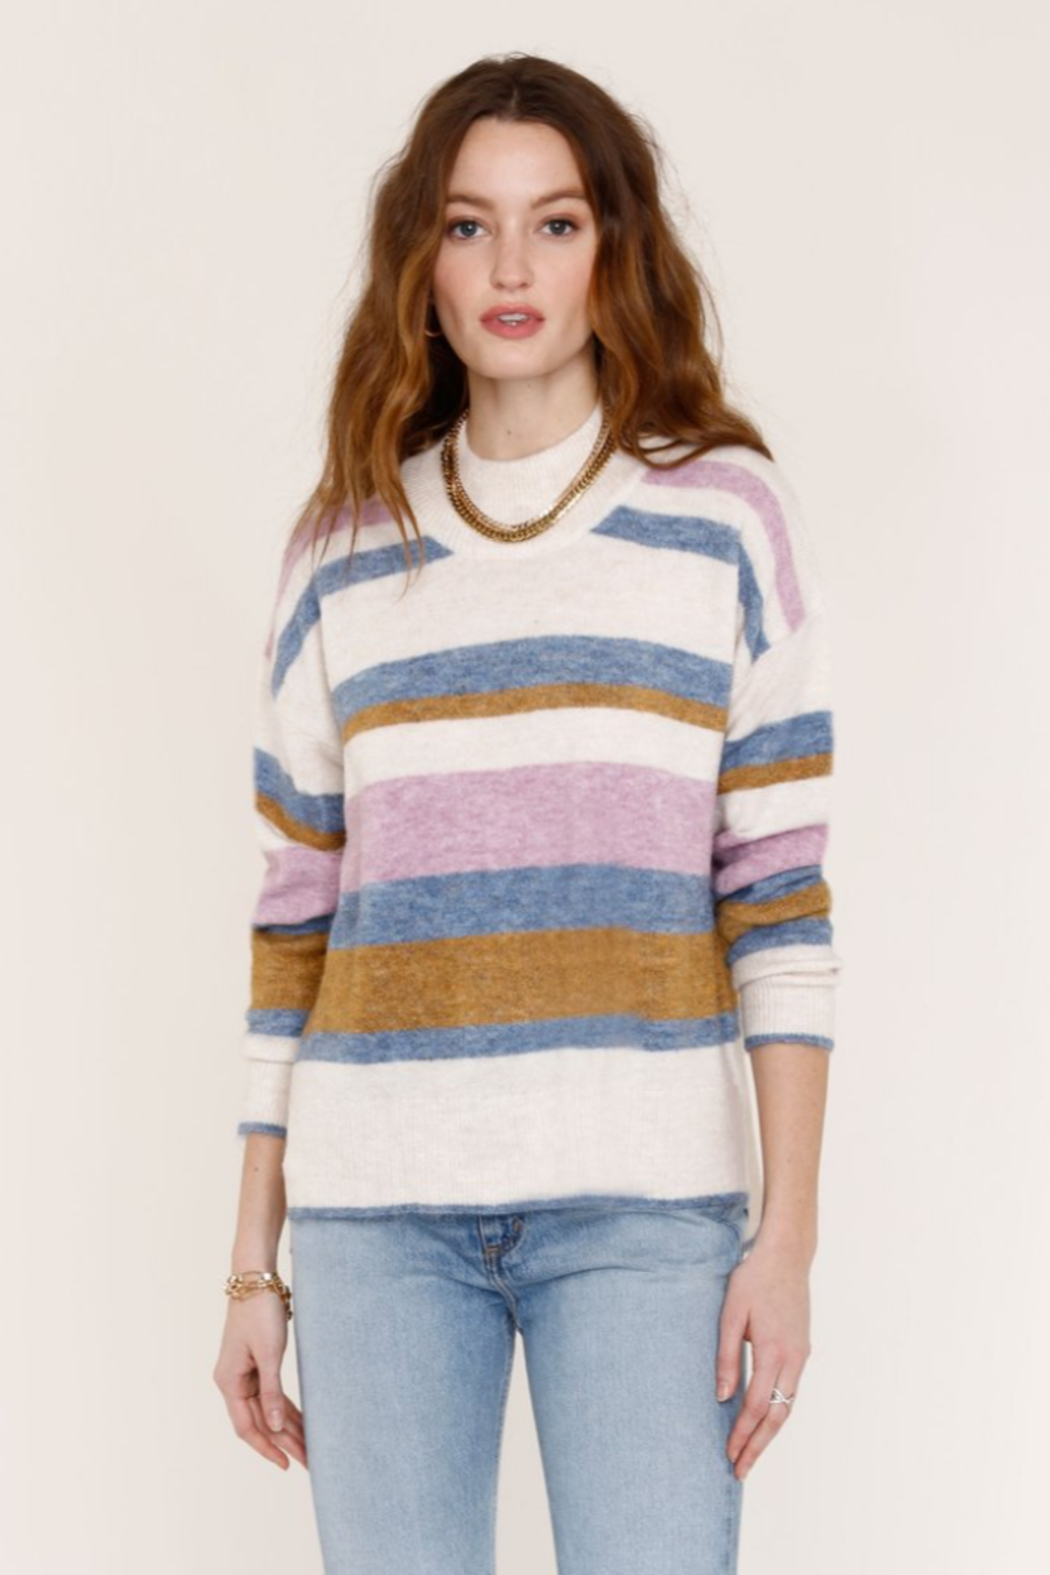 Heartloom HRT - CHARINA STRIPE SWEATER - Front Cropped Image